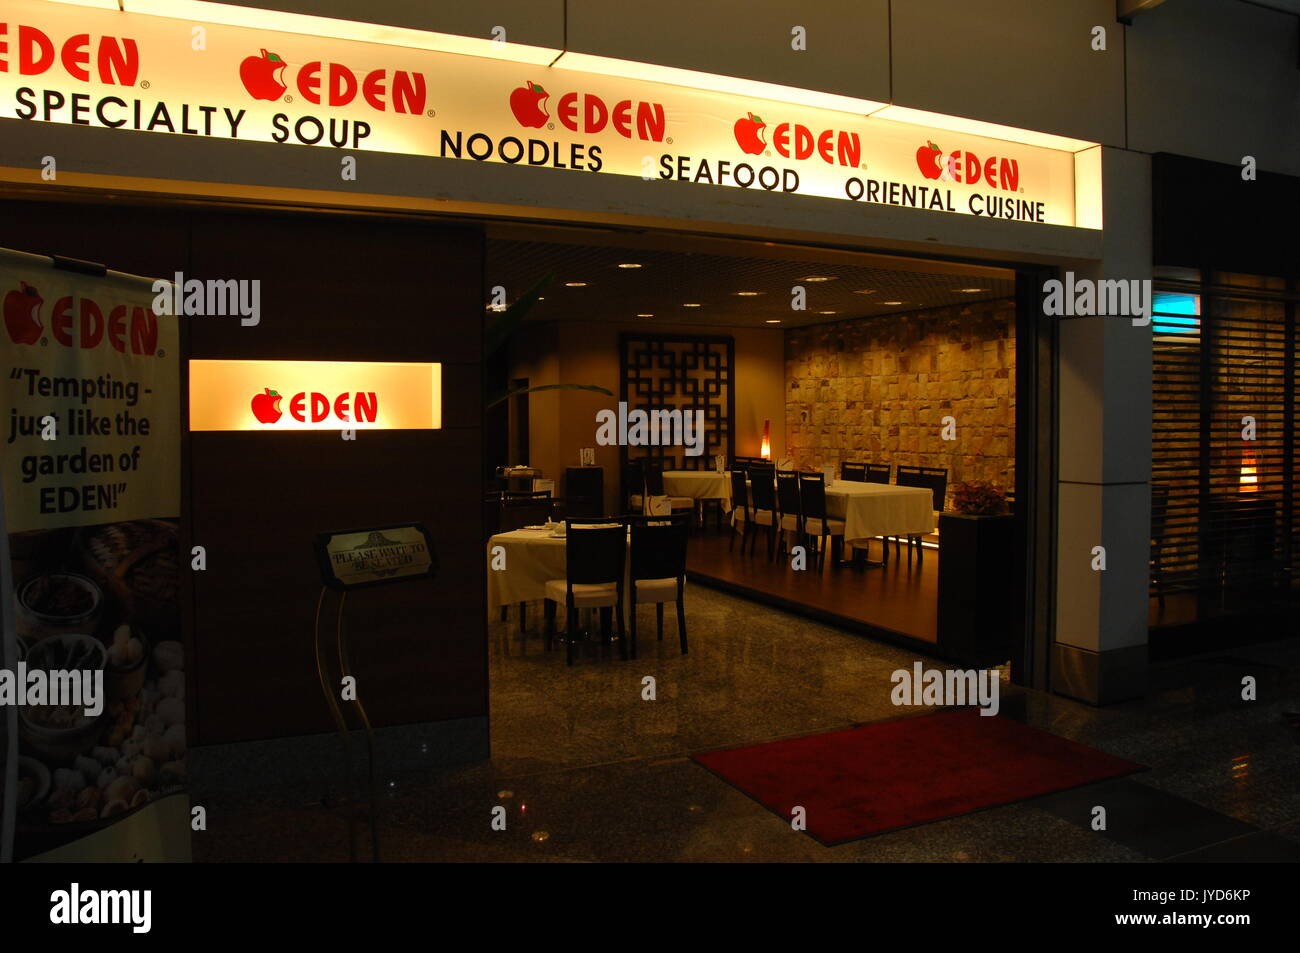 Business Lounge Signs Stock Photos & Business Lounge Signs Stock ...